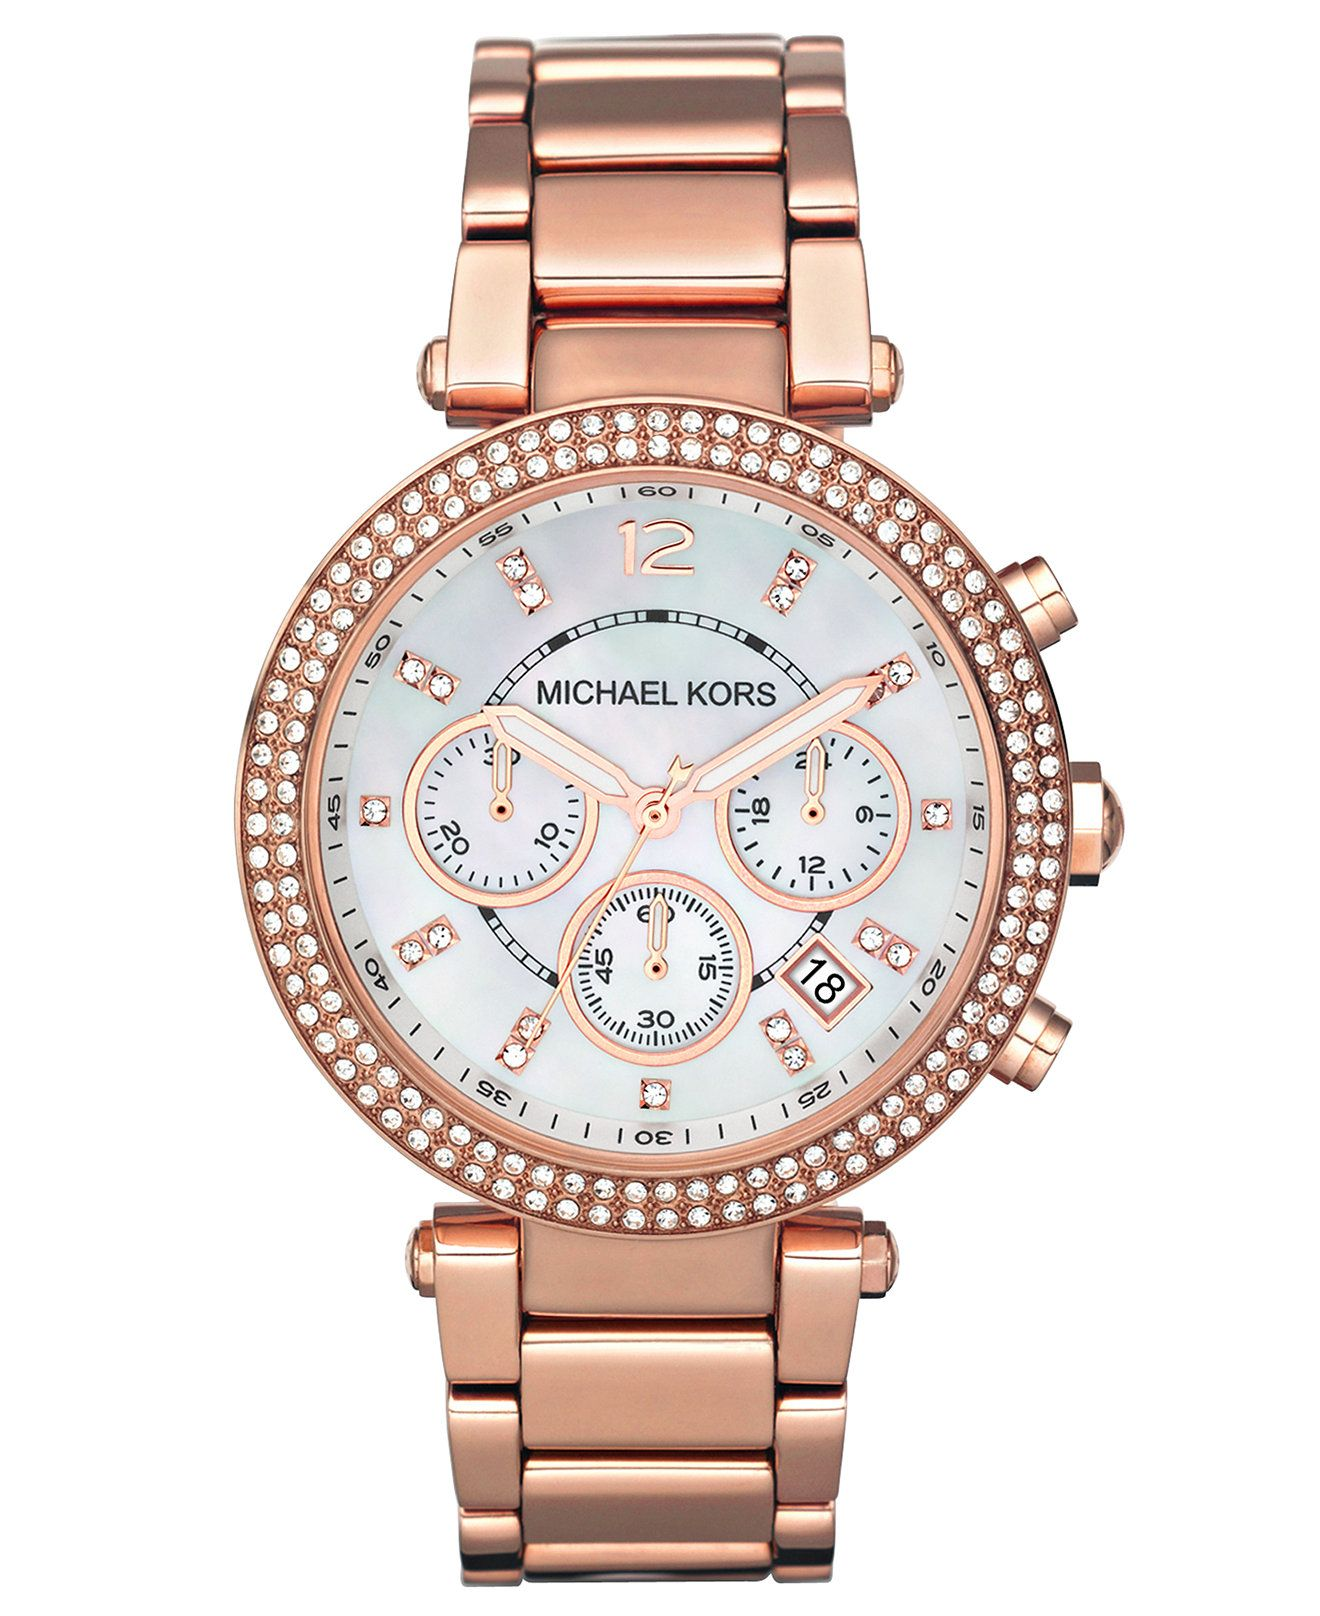 d11551a8f3cd Michael Kors Women s Chronograph Parker Rose Gold-Tone Stainless Steel  Bracelet Watch 39mm MK5491 - Michael Kors - Jewelry   Watches - Macy s